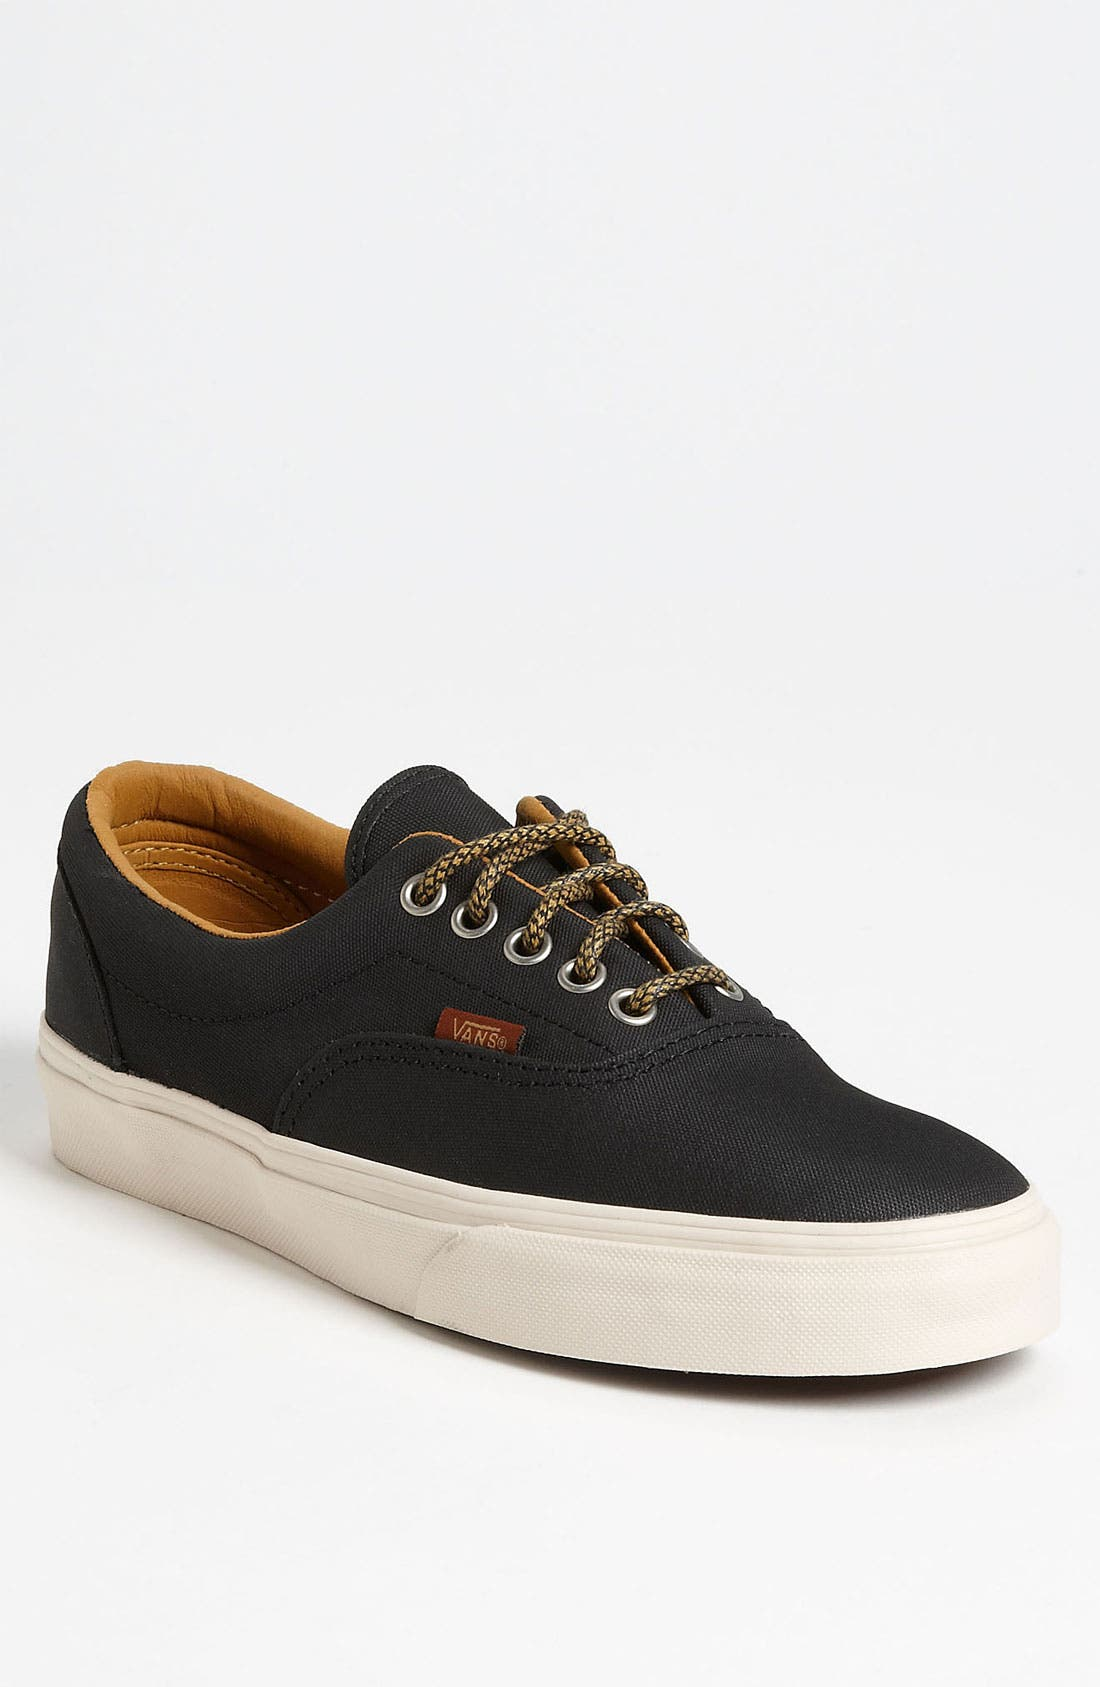 Alternate Image 1 Selected - Vans 'Cali - Era' Sneaker